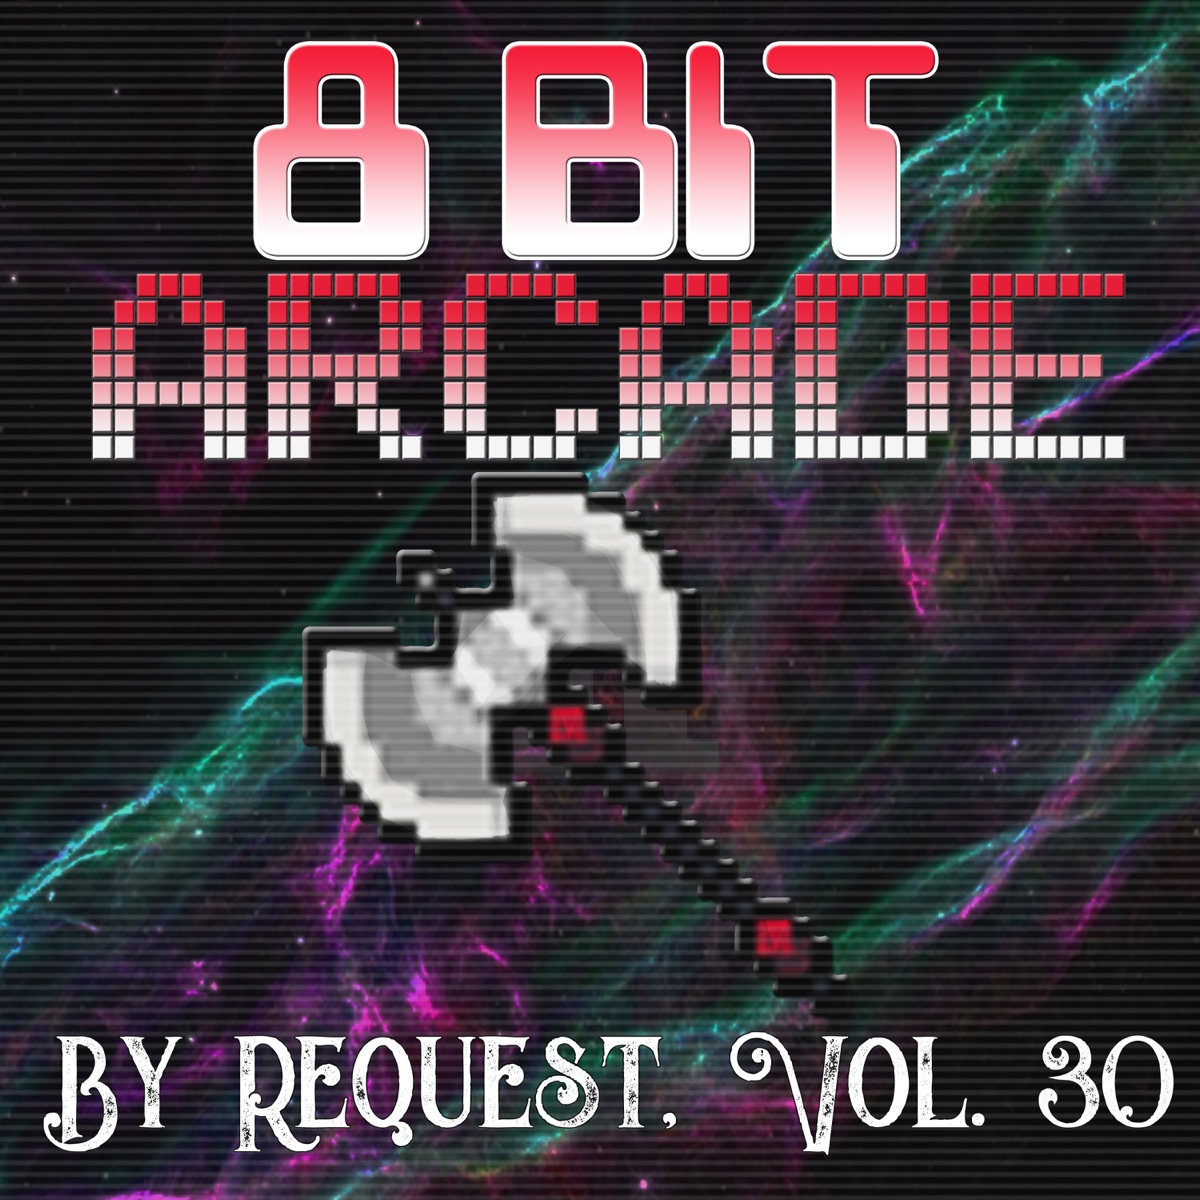 By Request Vol 30 8-Bit Arcade CD cover